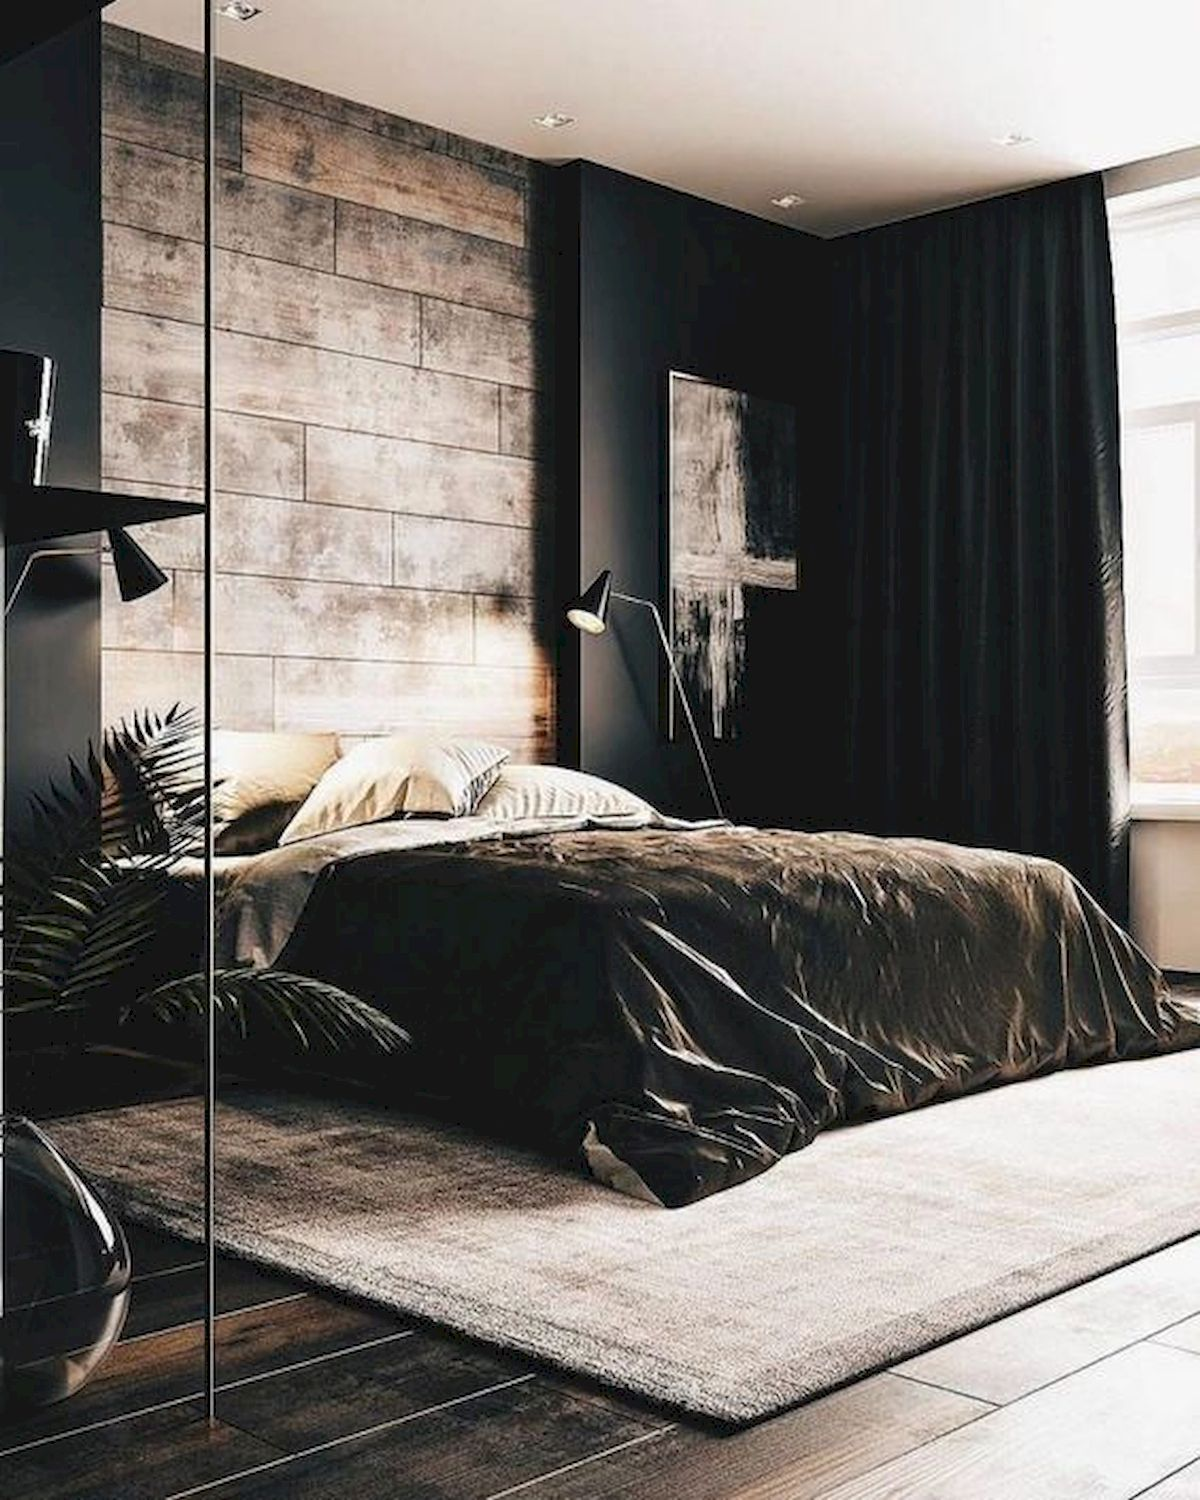 82 Cool Bedroom Ideas For Creative Couples 66 Artmyideas